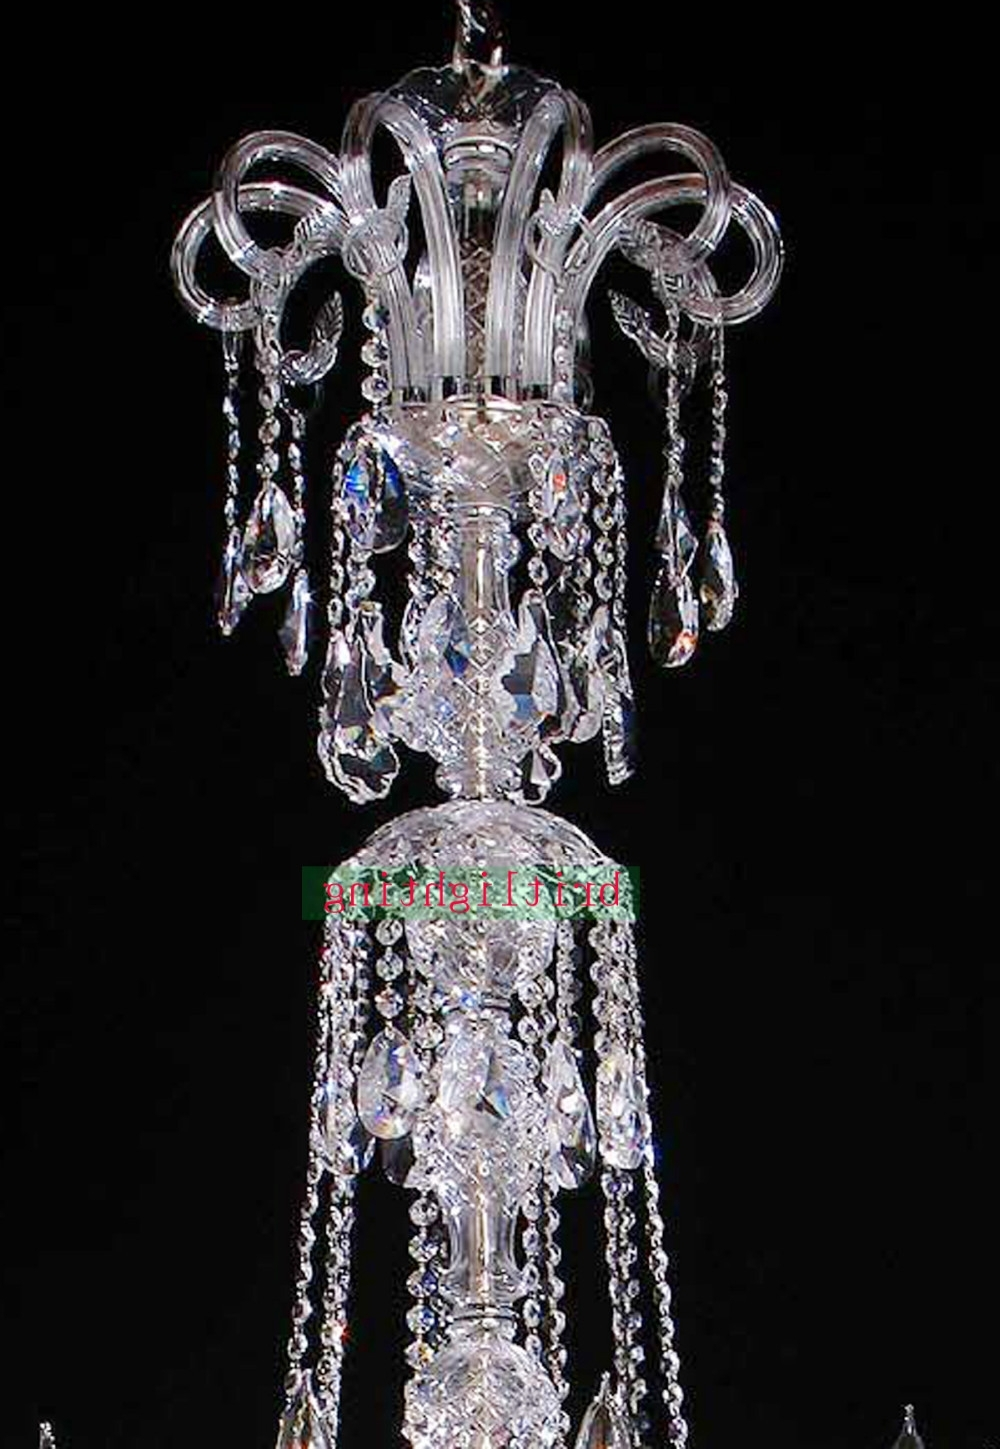 Extra Large Crystal Chandeliers intended for Best and Newest Lamp Modern Crystal Chandeliers 5 Star Hotel Chandelier Led Crystal